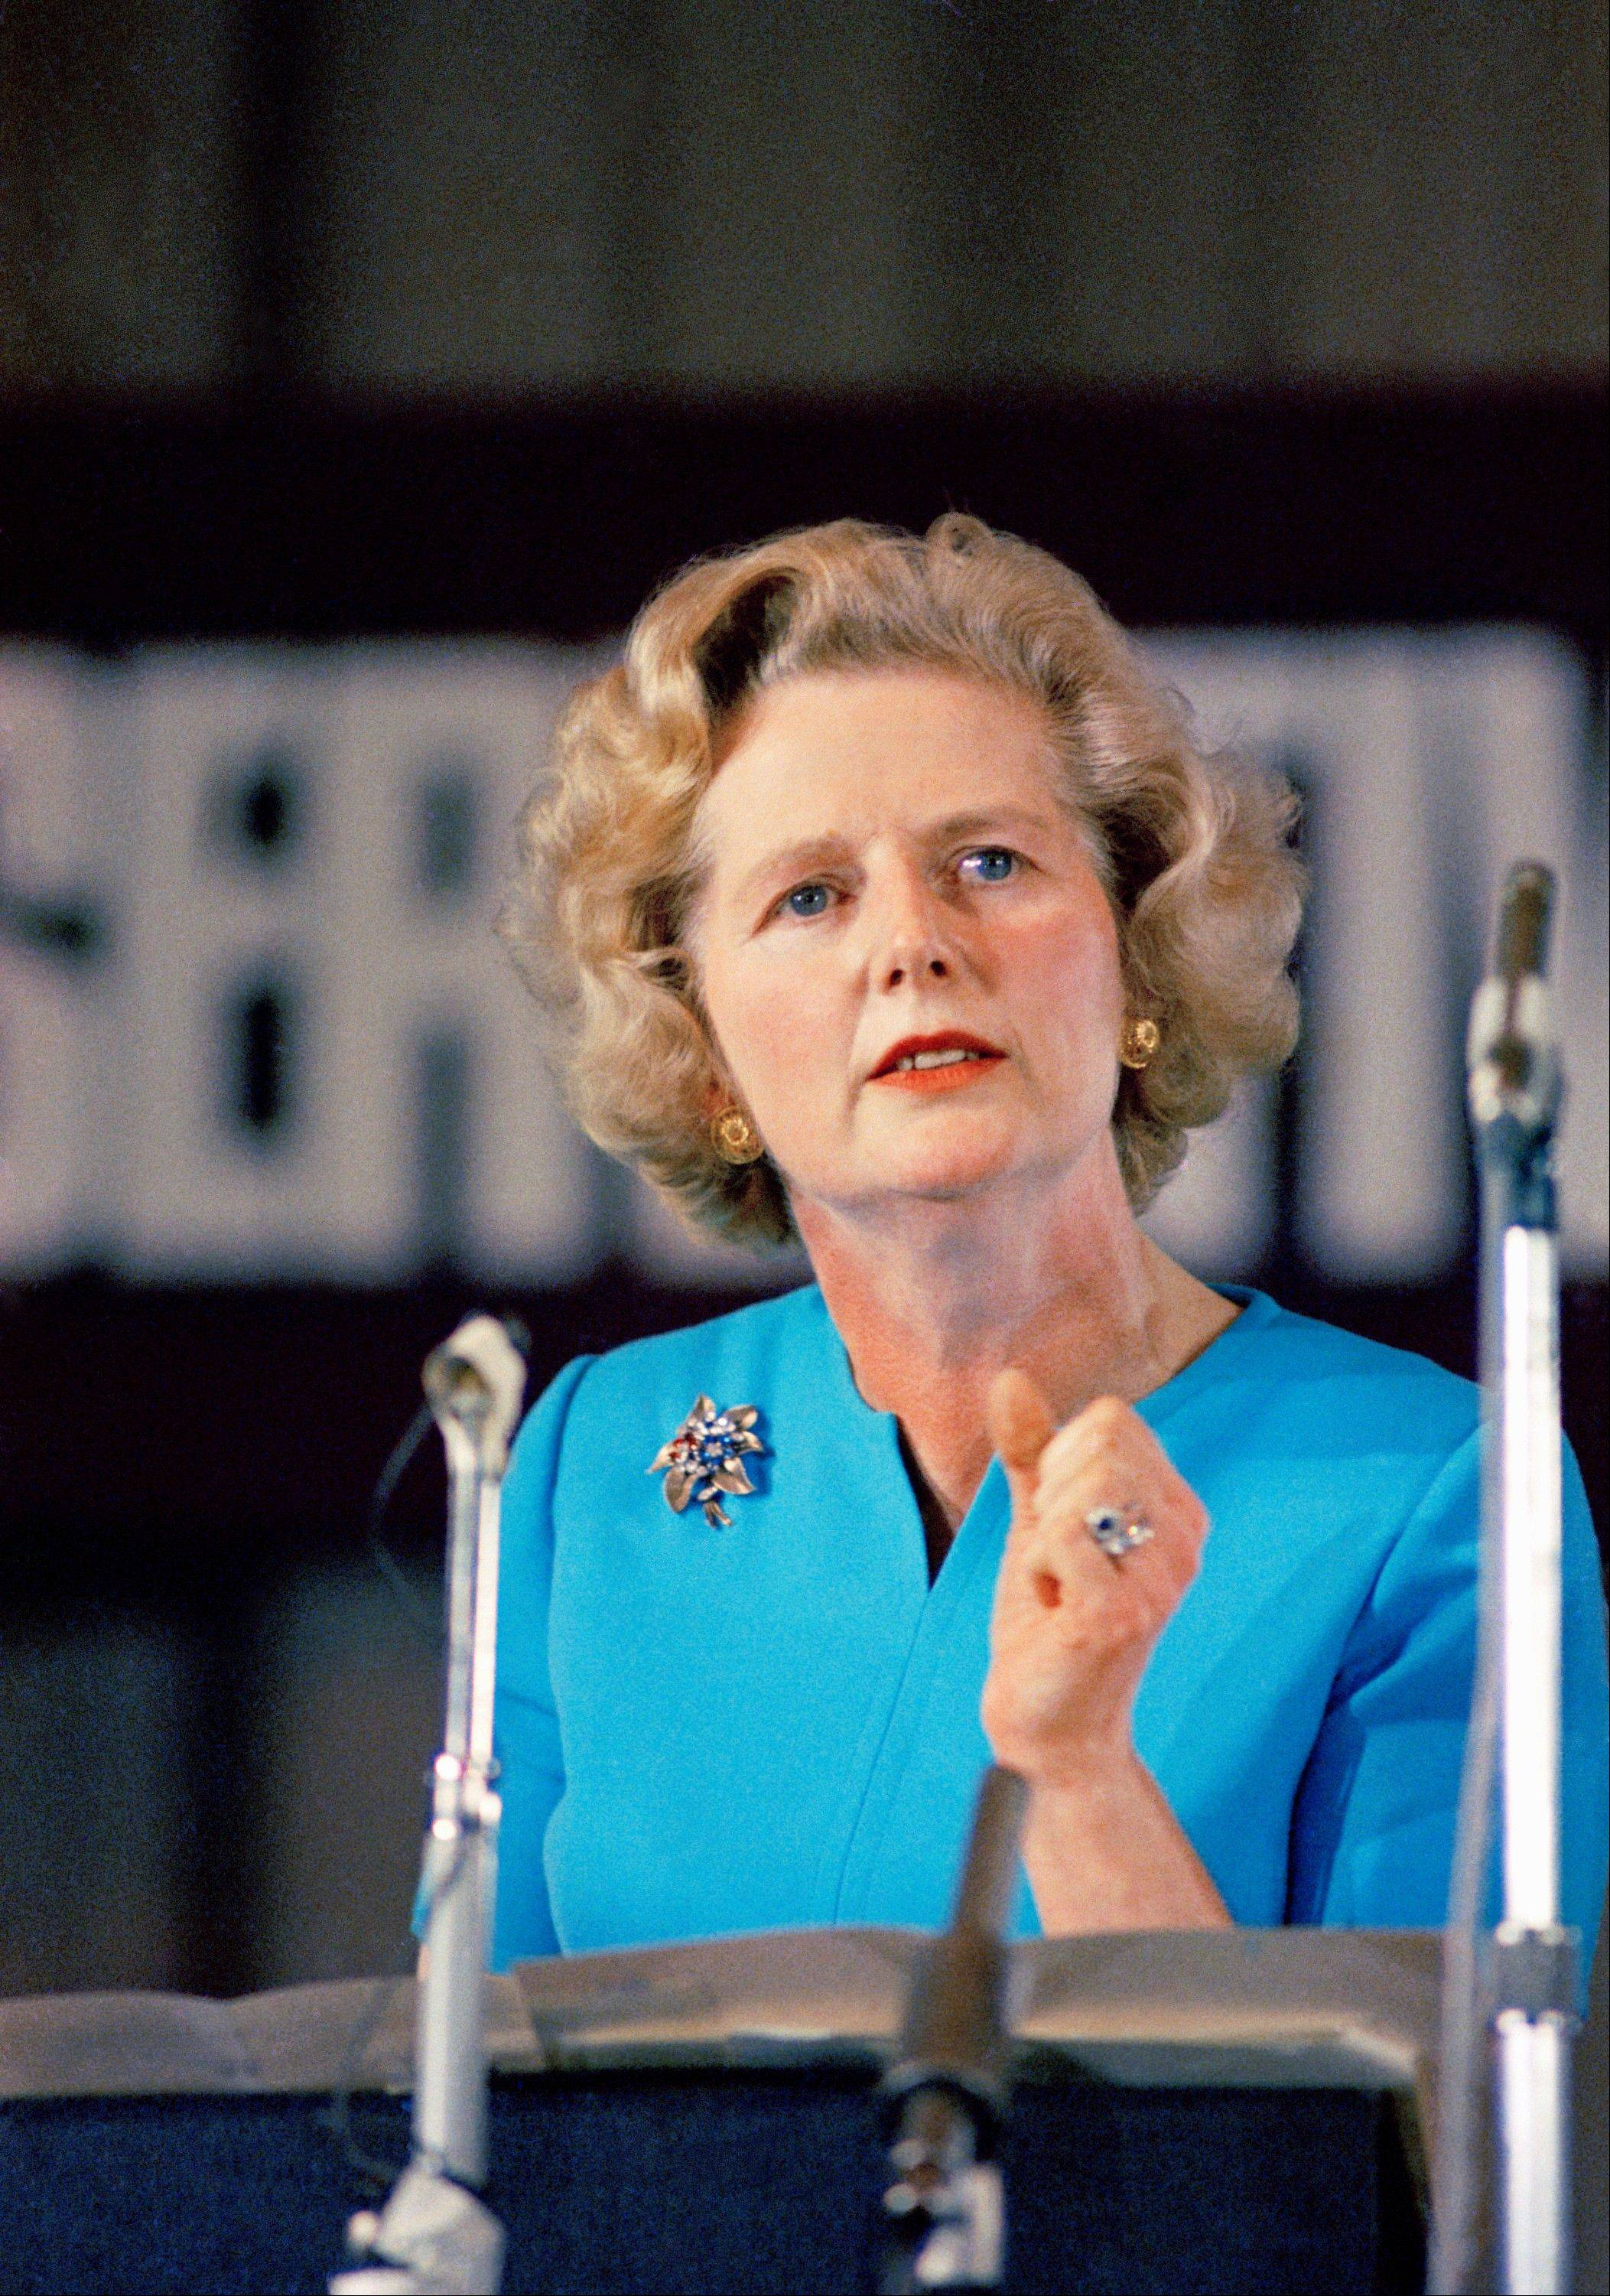 In a Feb. 10, 1975 file photo, Margaret Thatcher, leading conservative who won the first ballot for leadership which resulted in Edward Heaths resignation, speaks in London. Thatchers former spokesman, Tim Bell, said that former British Prime Minister Margaret Thatcher died Monday morning, April 8, 2013, of a stroke. She was 87.